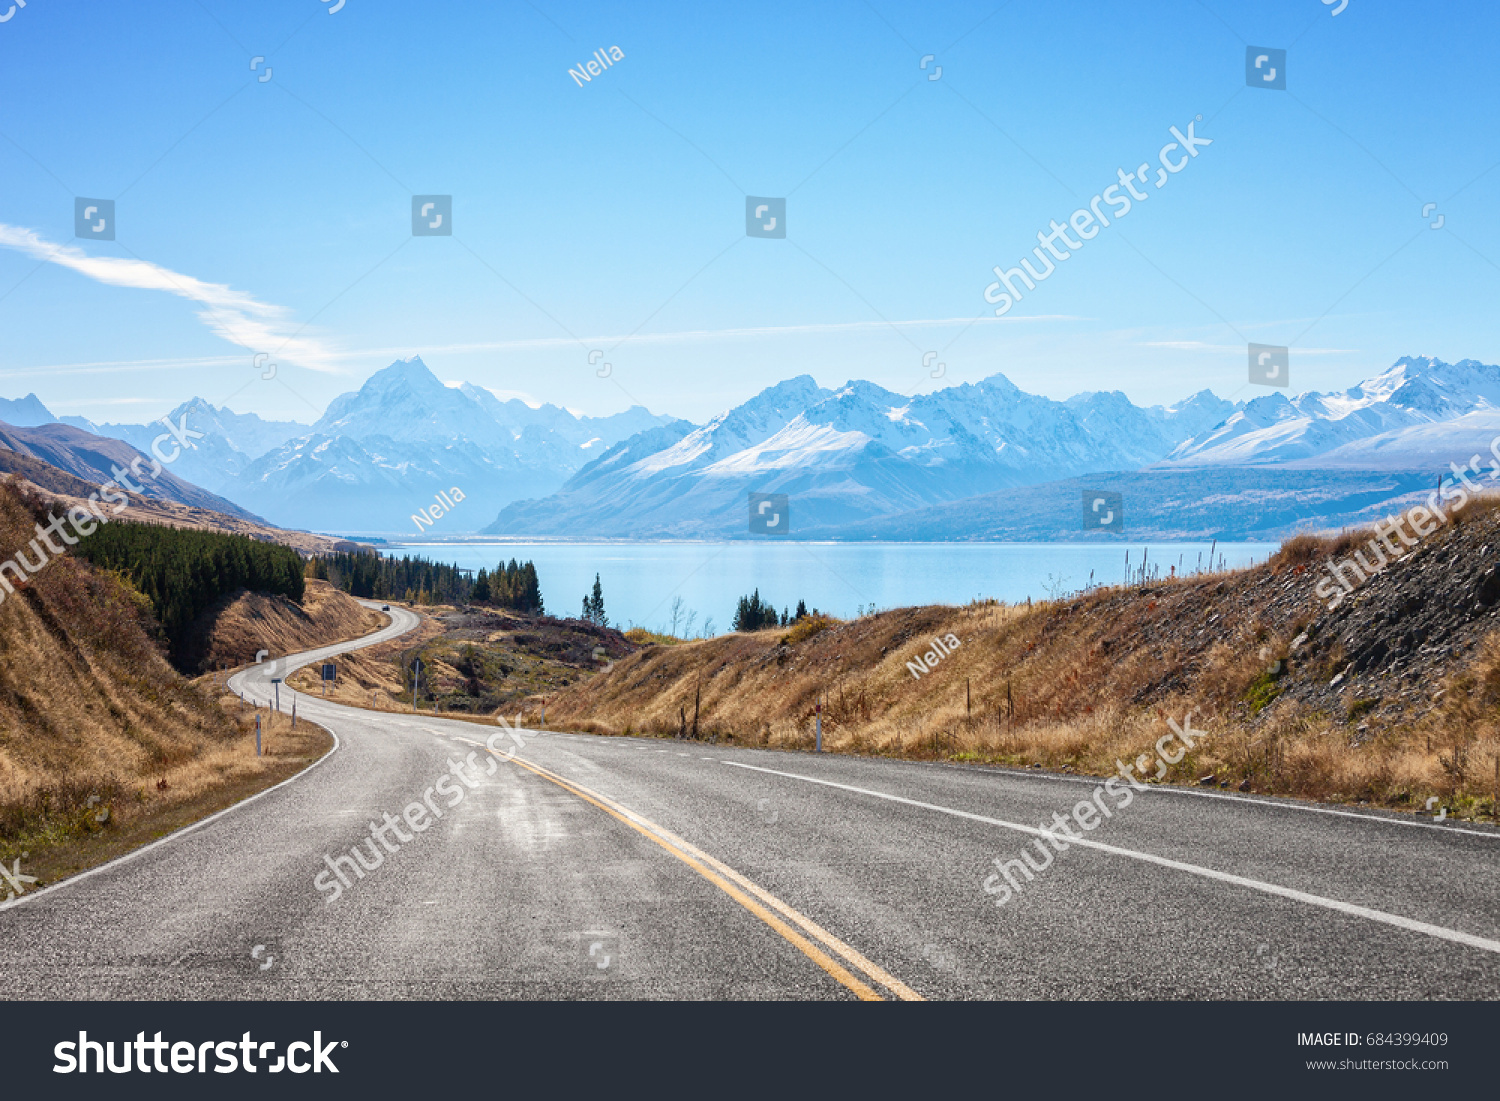 Scenic Road to Mount Cook National Park (near  Lake Pukaki) ,South Island, New Zealand. #684399409 - 123PhotoFree.com